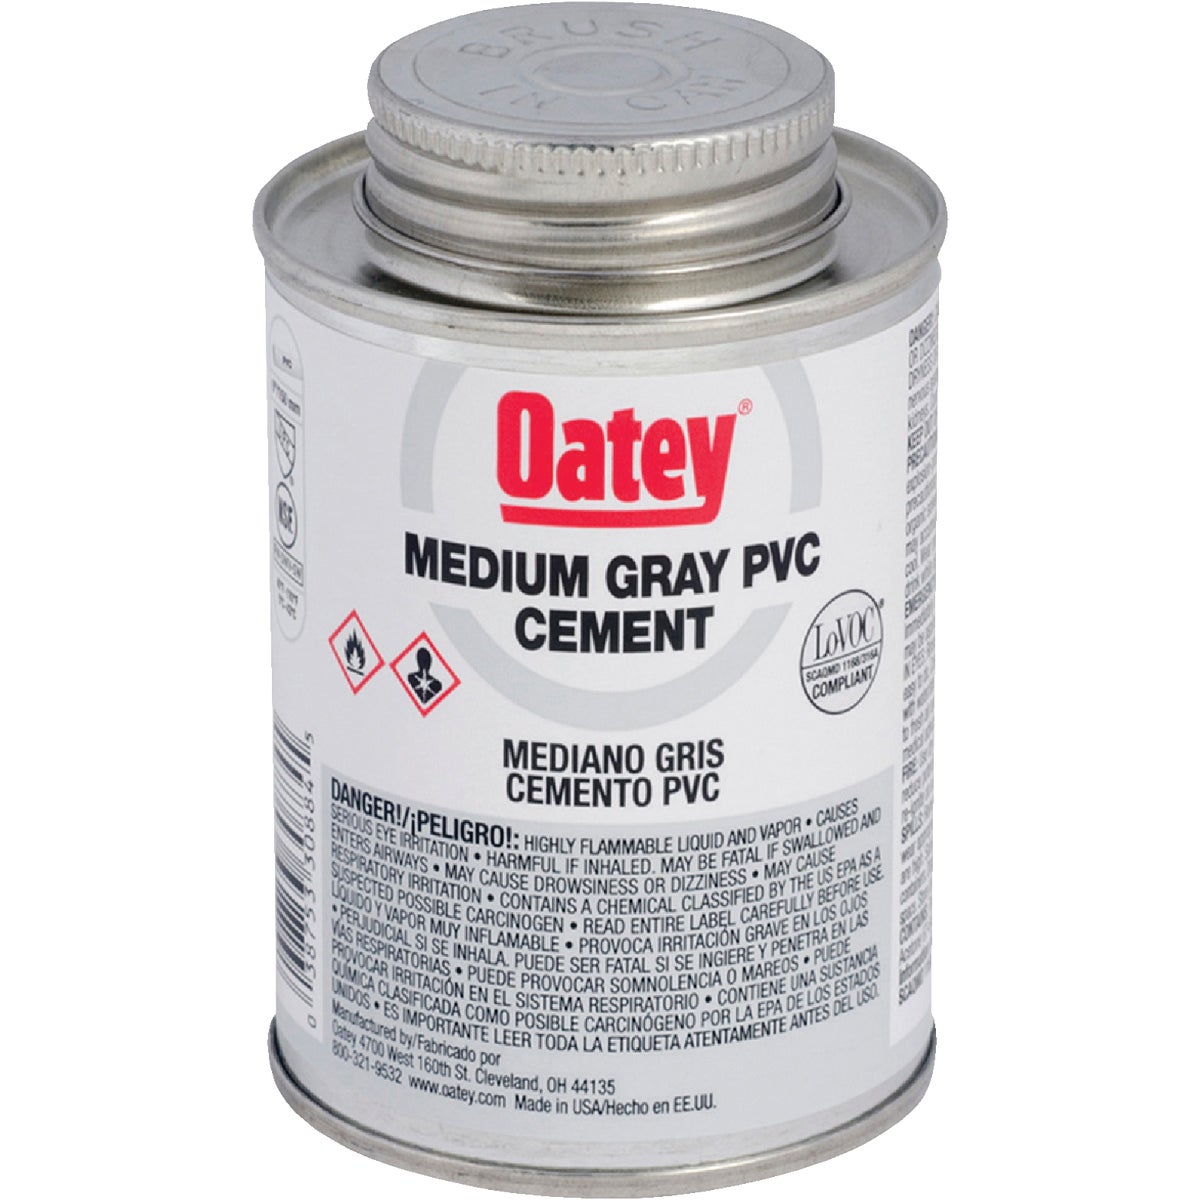 1/4PINT PVC CEMENT - 30883 by Oatey Scs